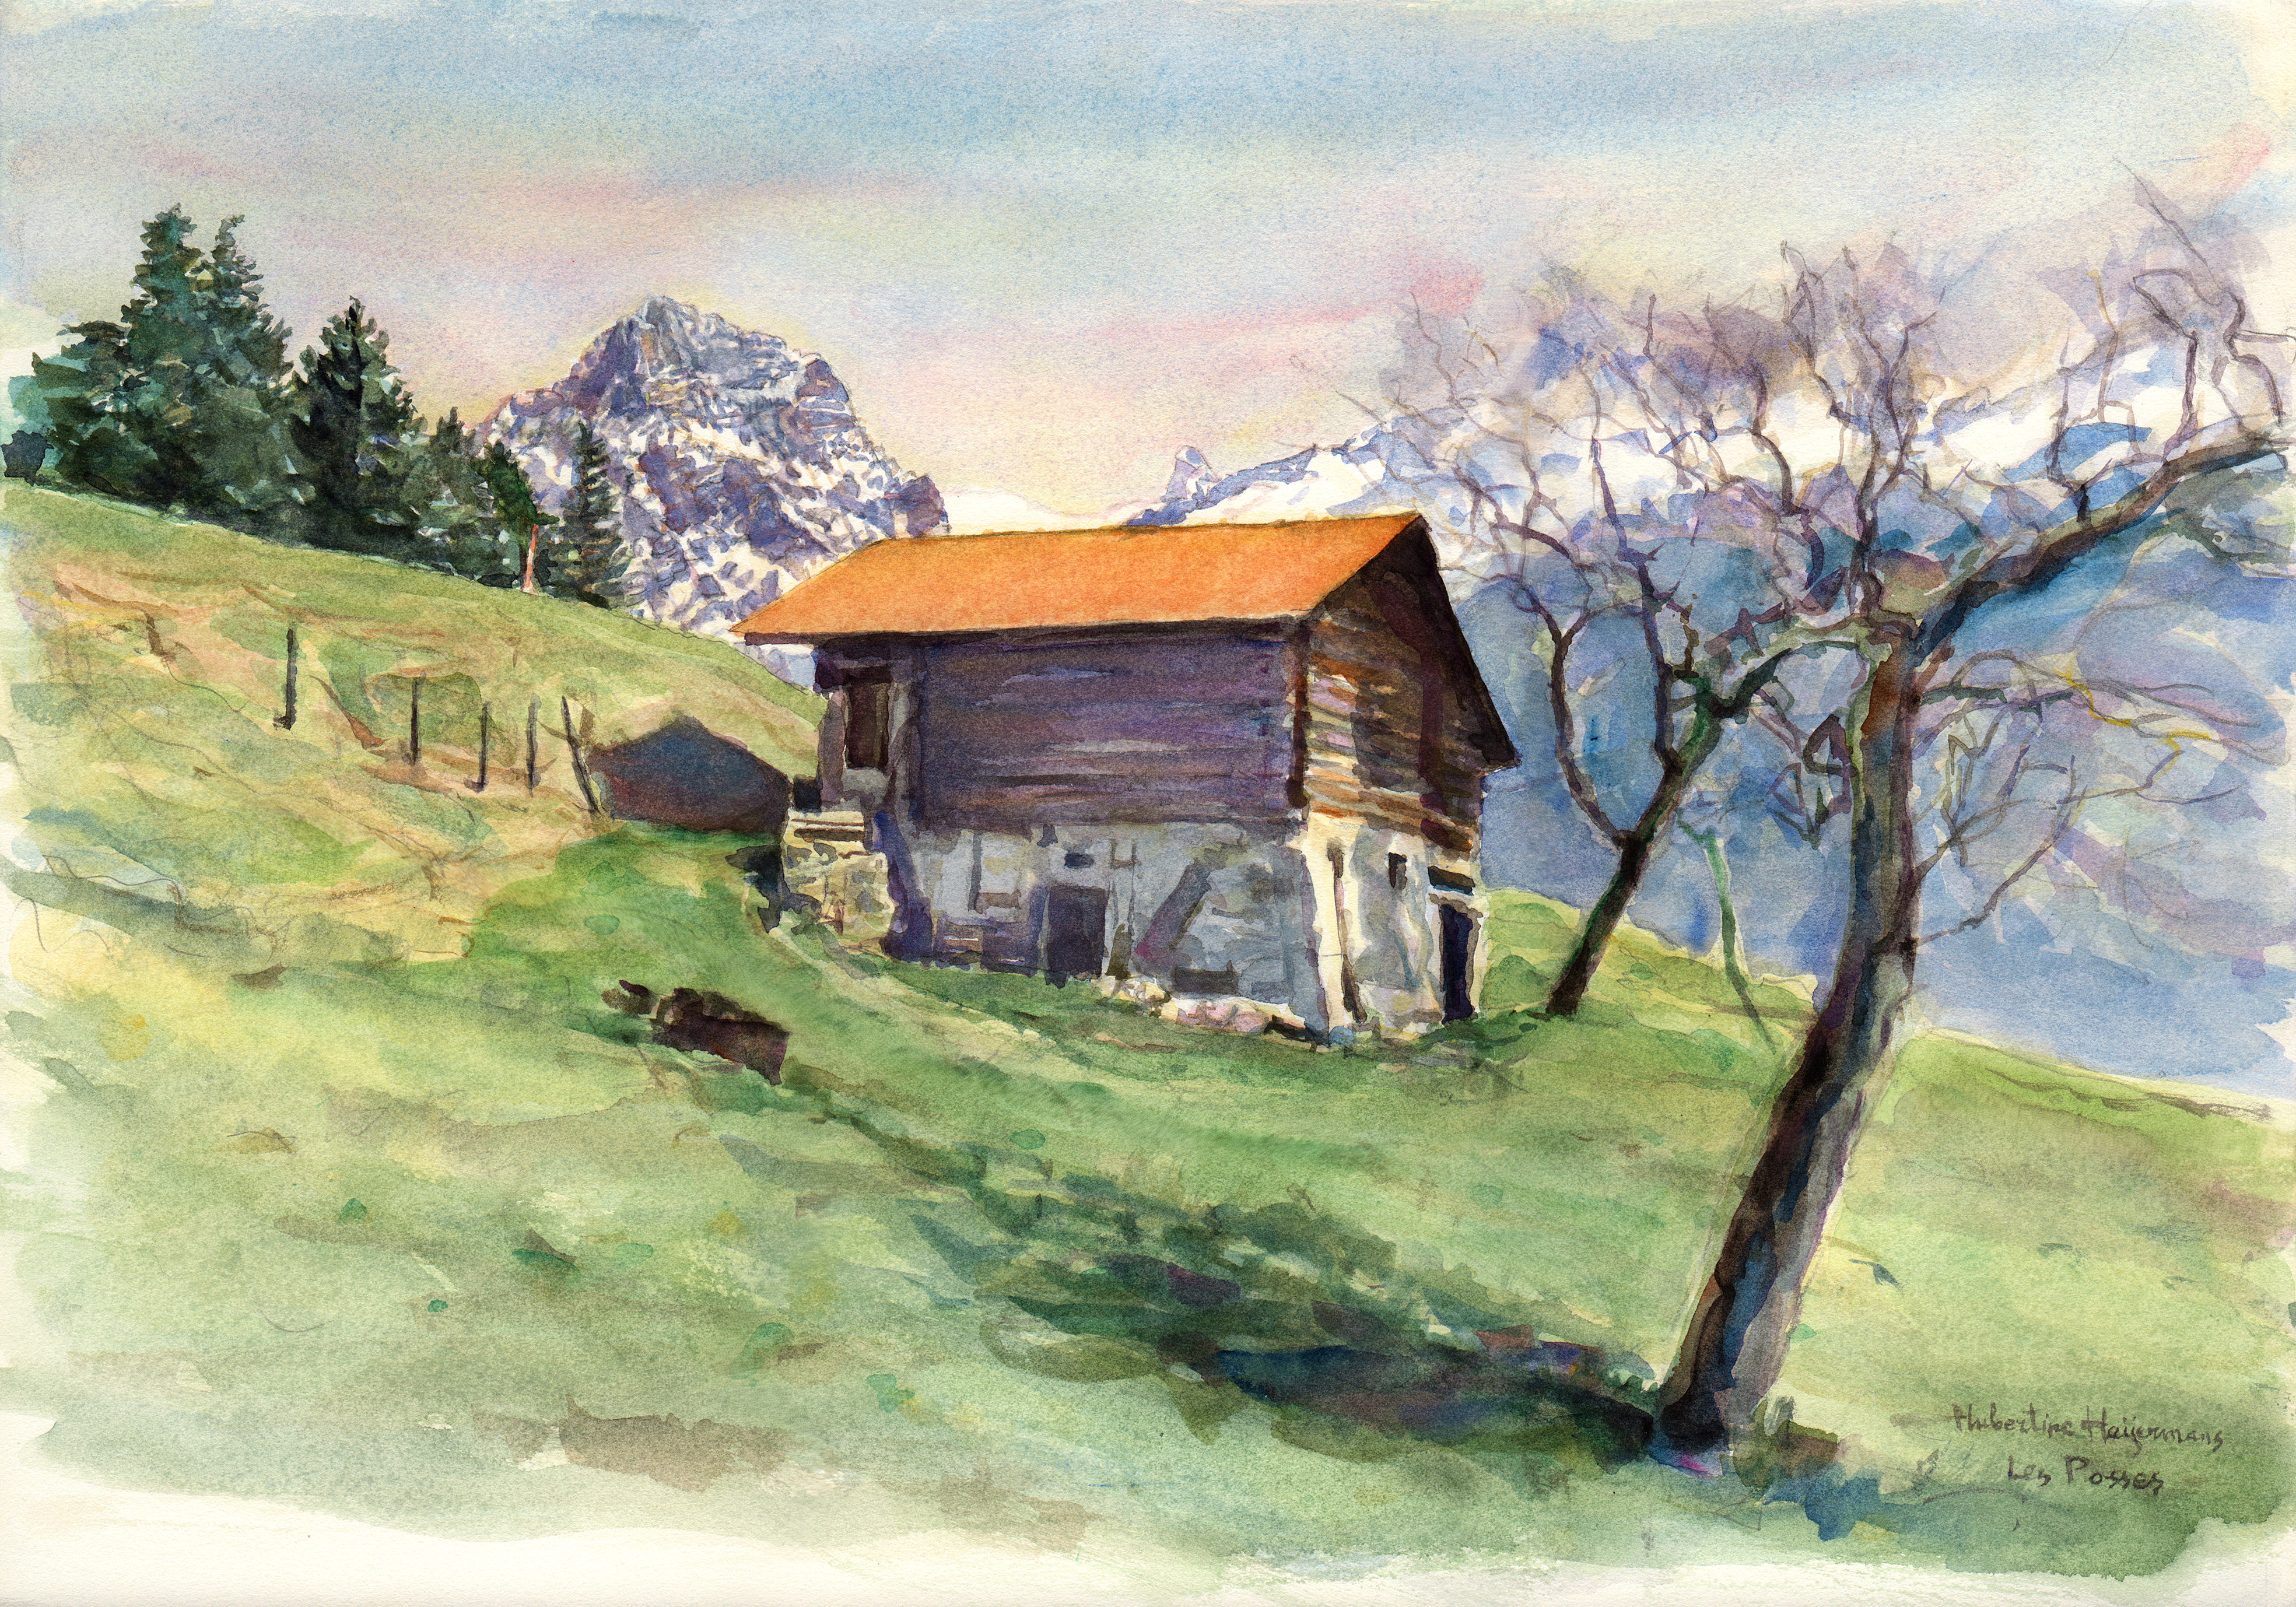 Mountain barn at 'Les Posses' above Gryon - watercolor 38x54cm 2003, Air, Meadow, Watercolor, Trees, HQ Photo